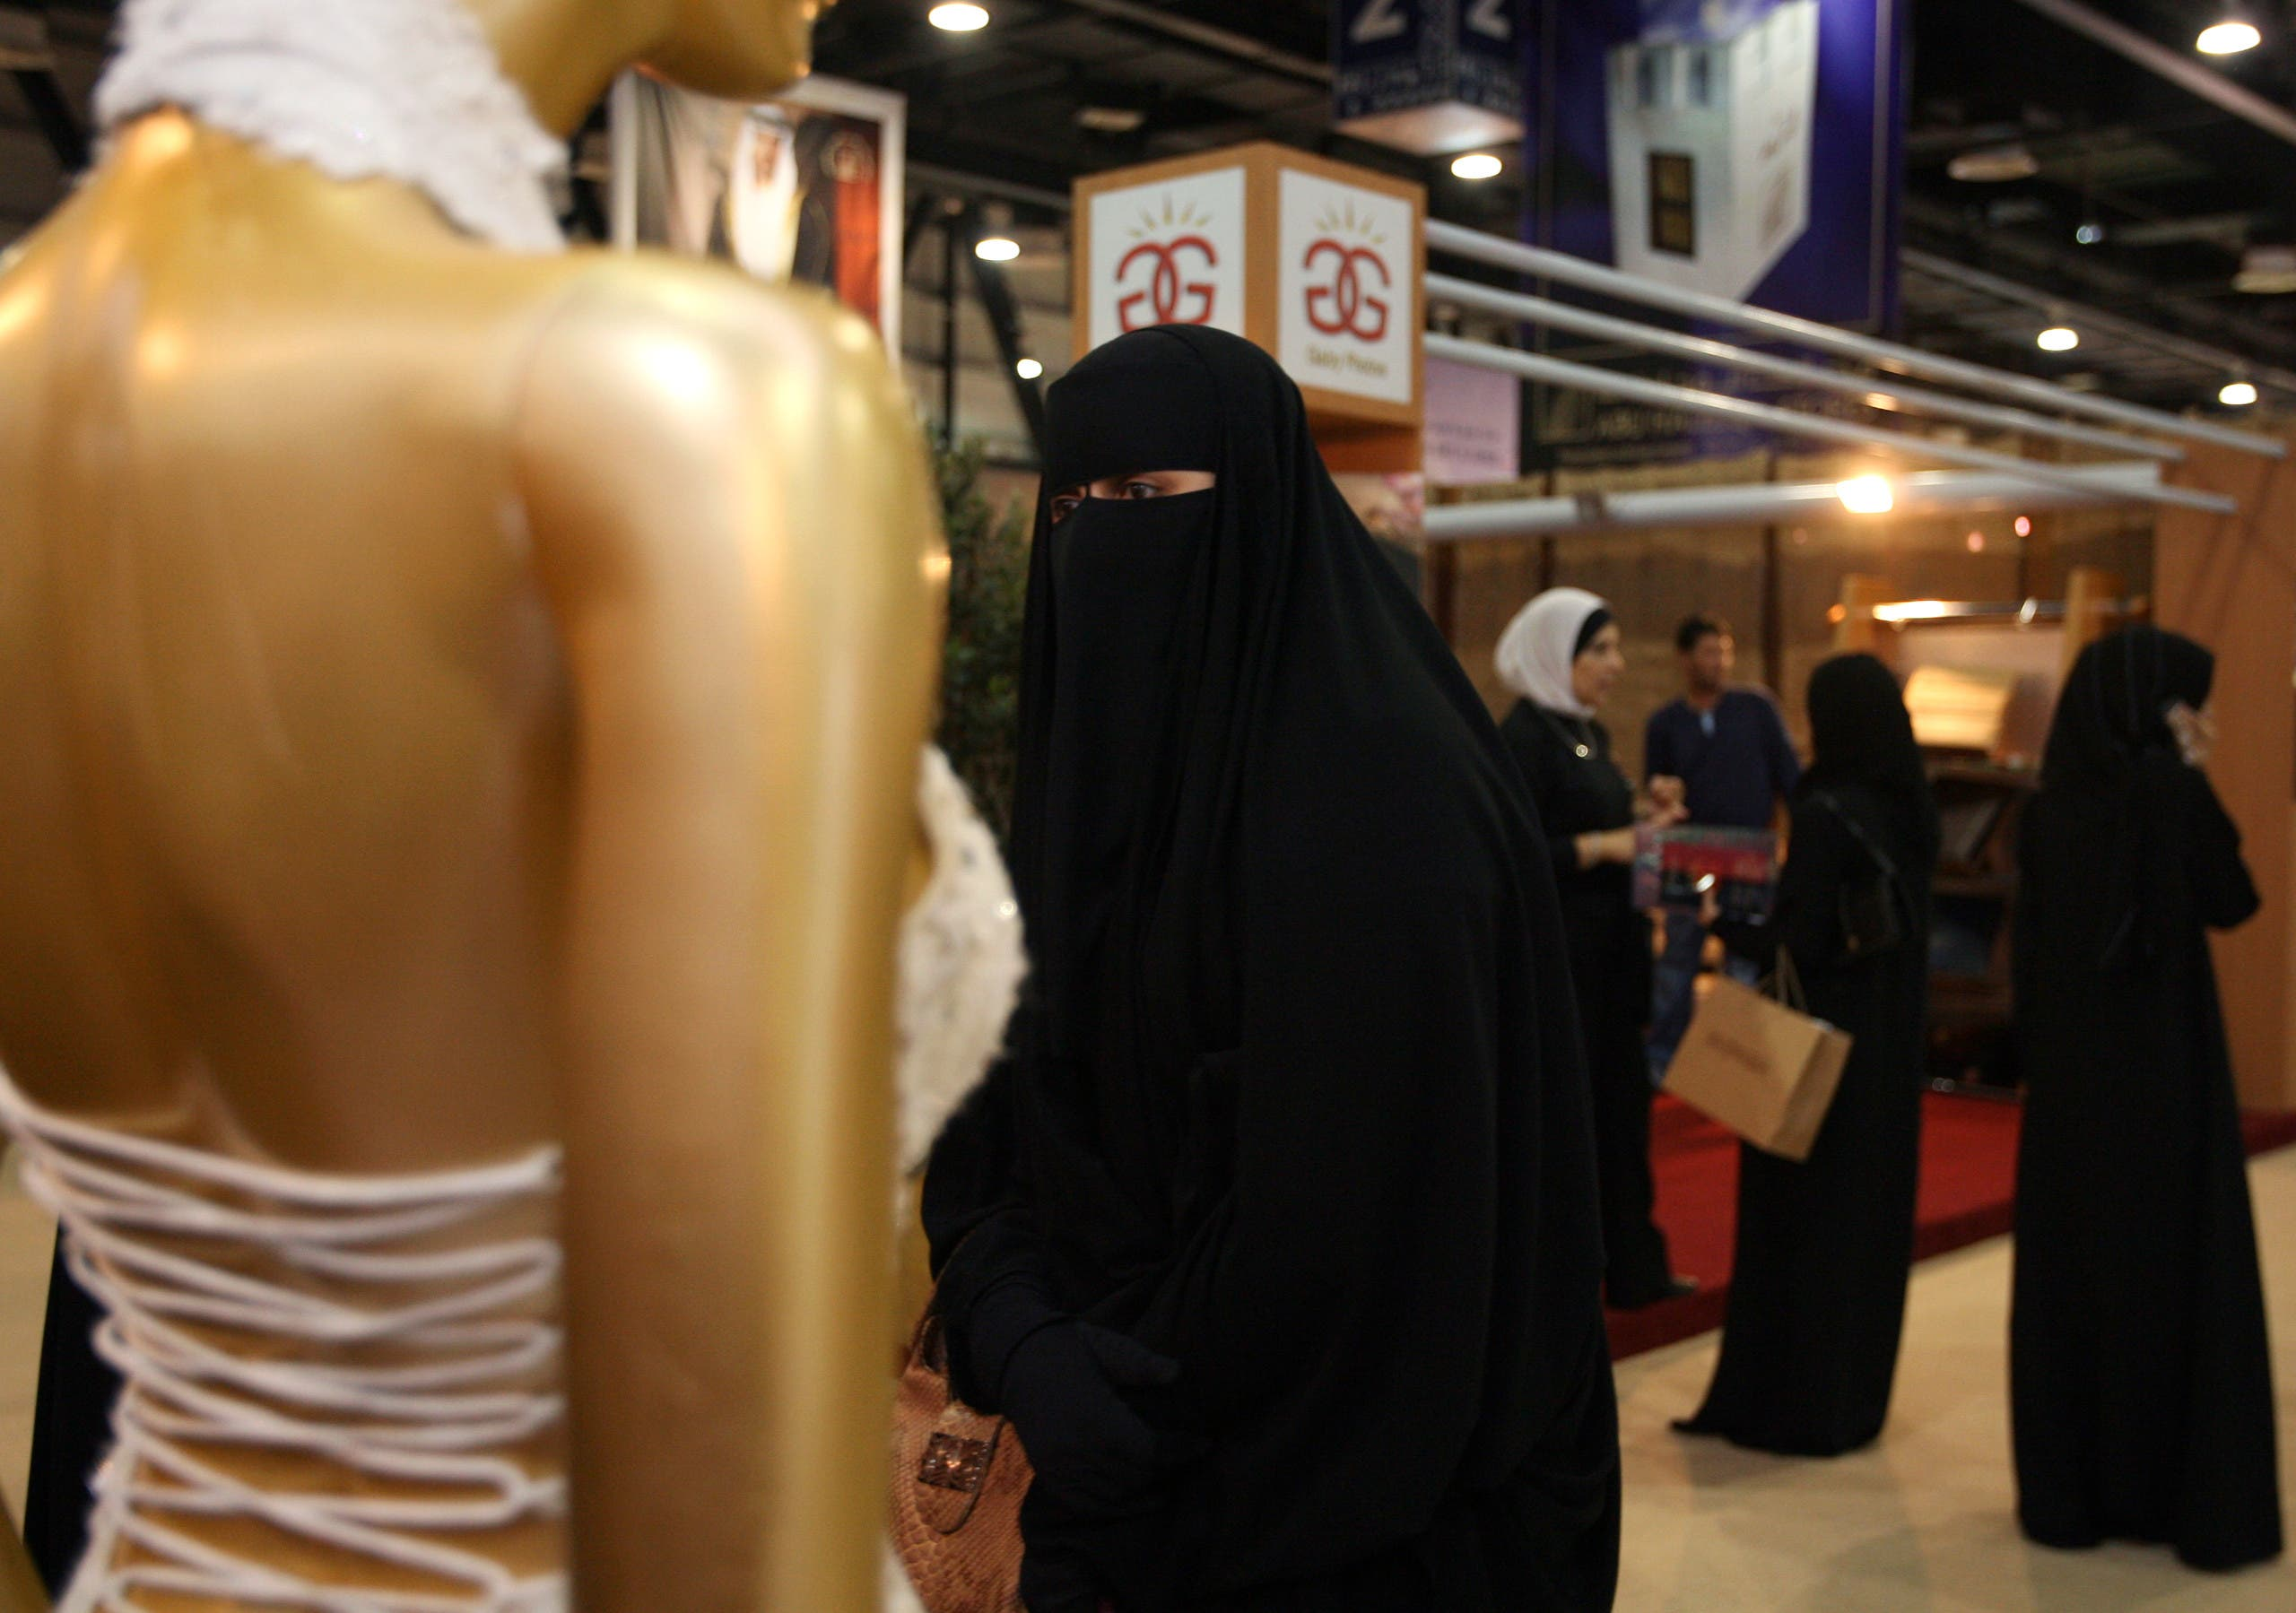 A woman walks past a wedding dress on display at The Bride Show in Dubai, United Arab Emirates. The event, for the wedding industry, is held for four days in Dubai. (File photo: Reuters)